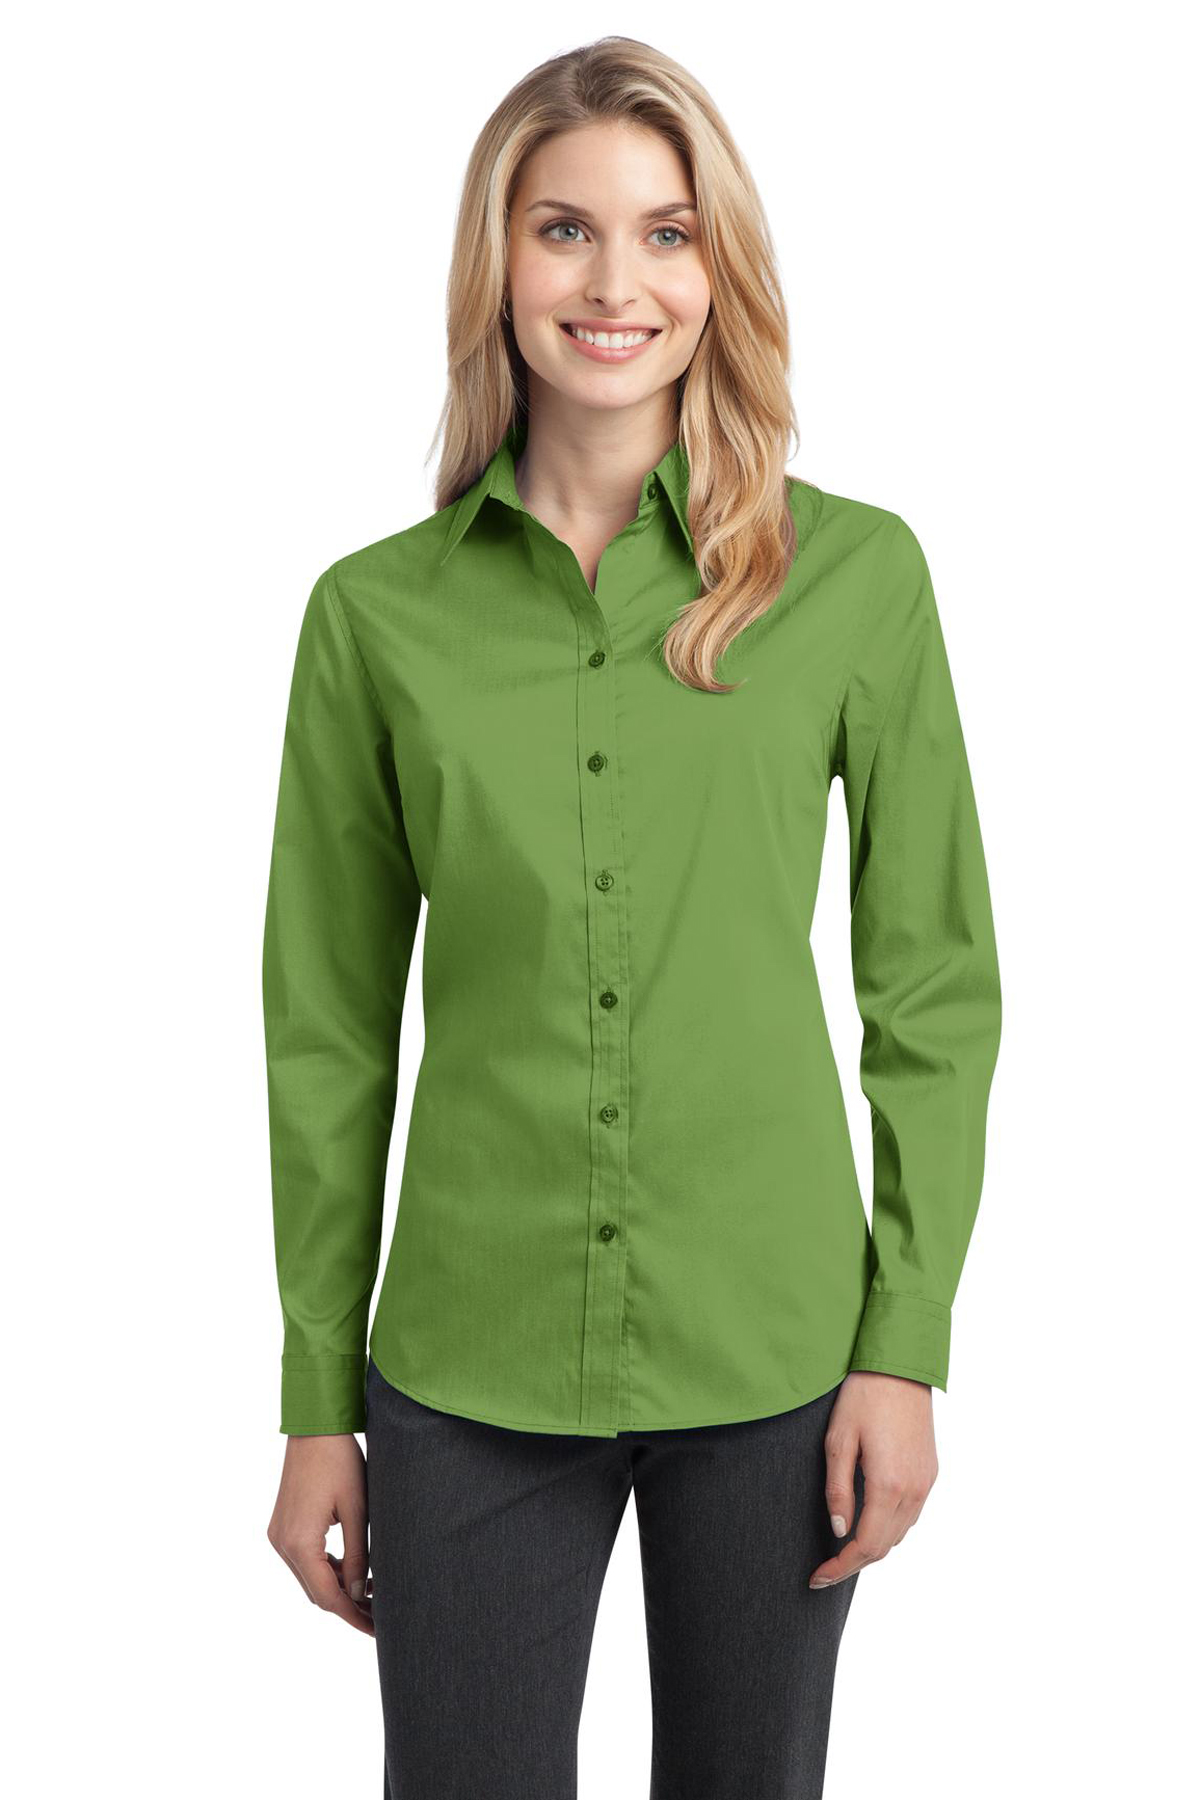 Woven-Shirts-Easy-Care-17